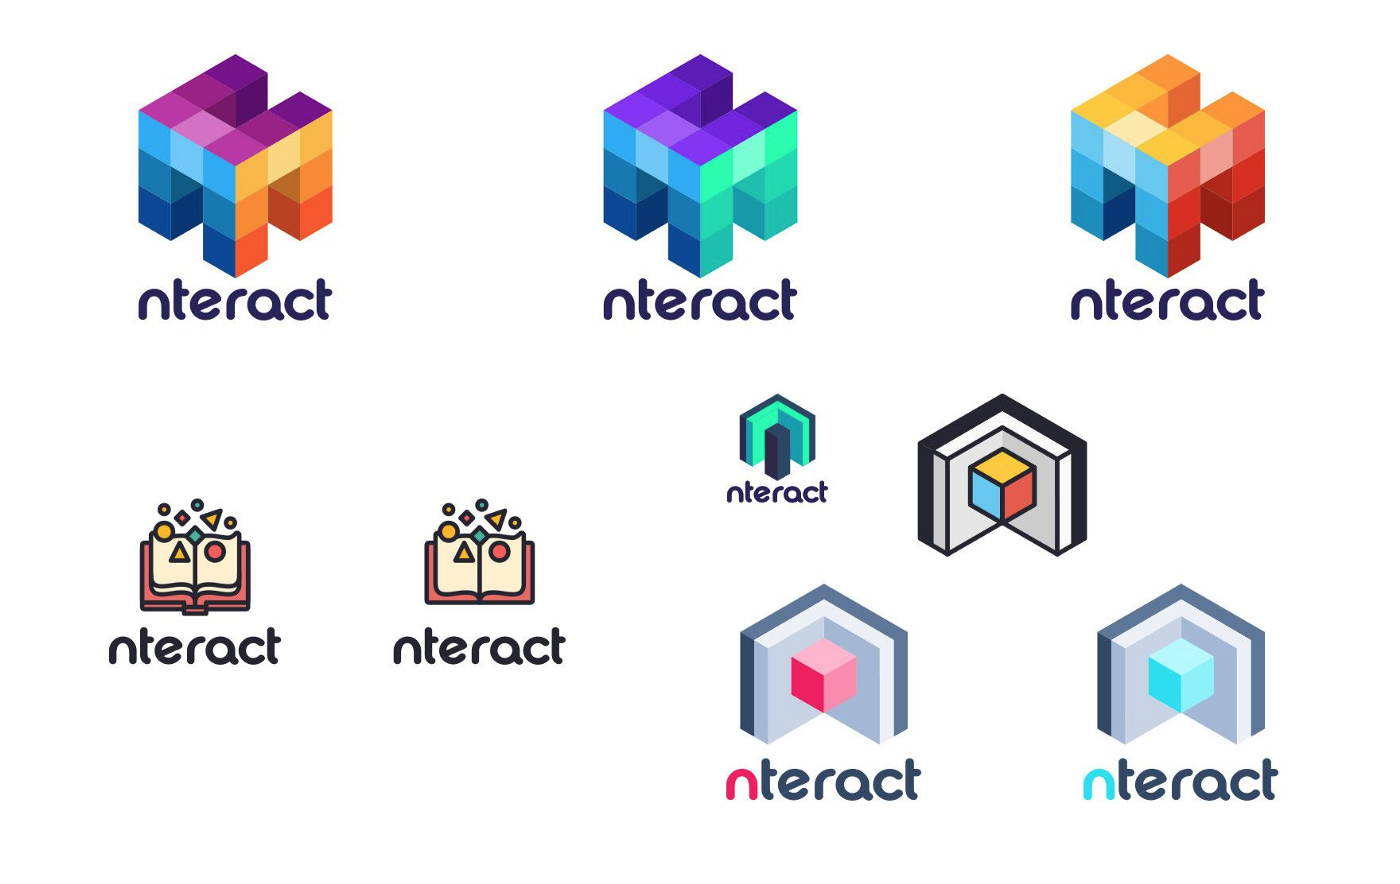 Collaborating on Visual Identity - nteract